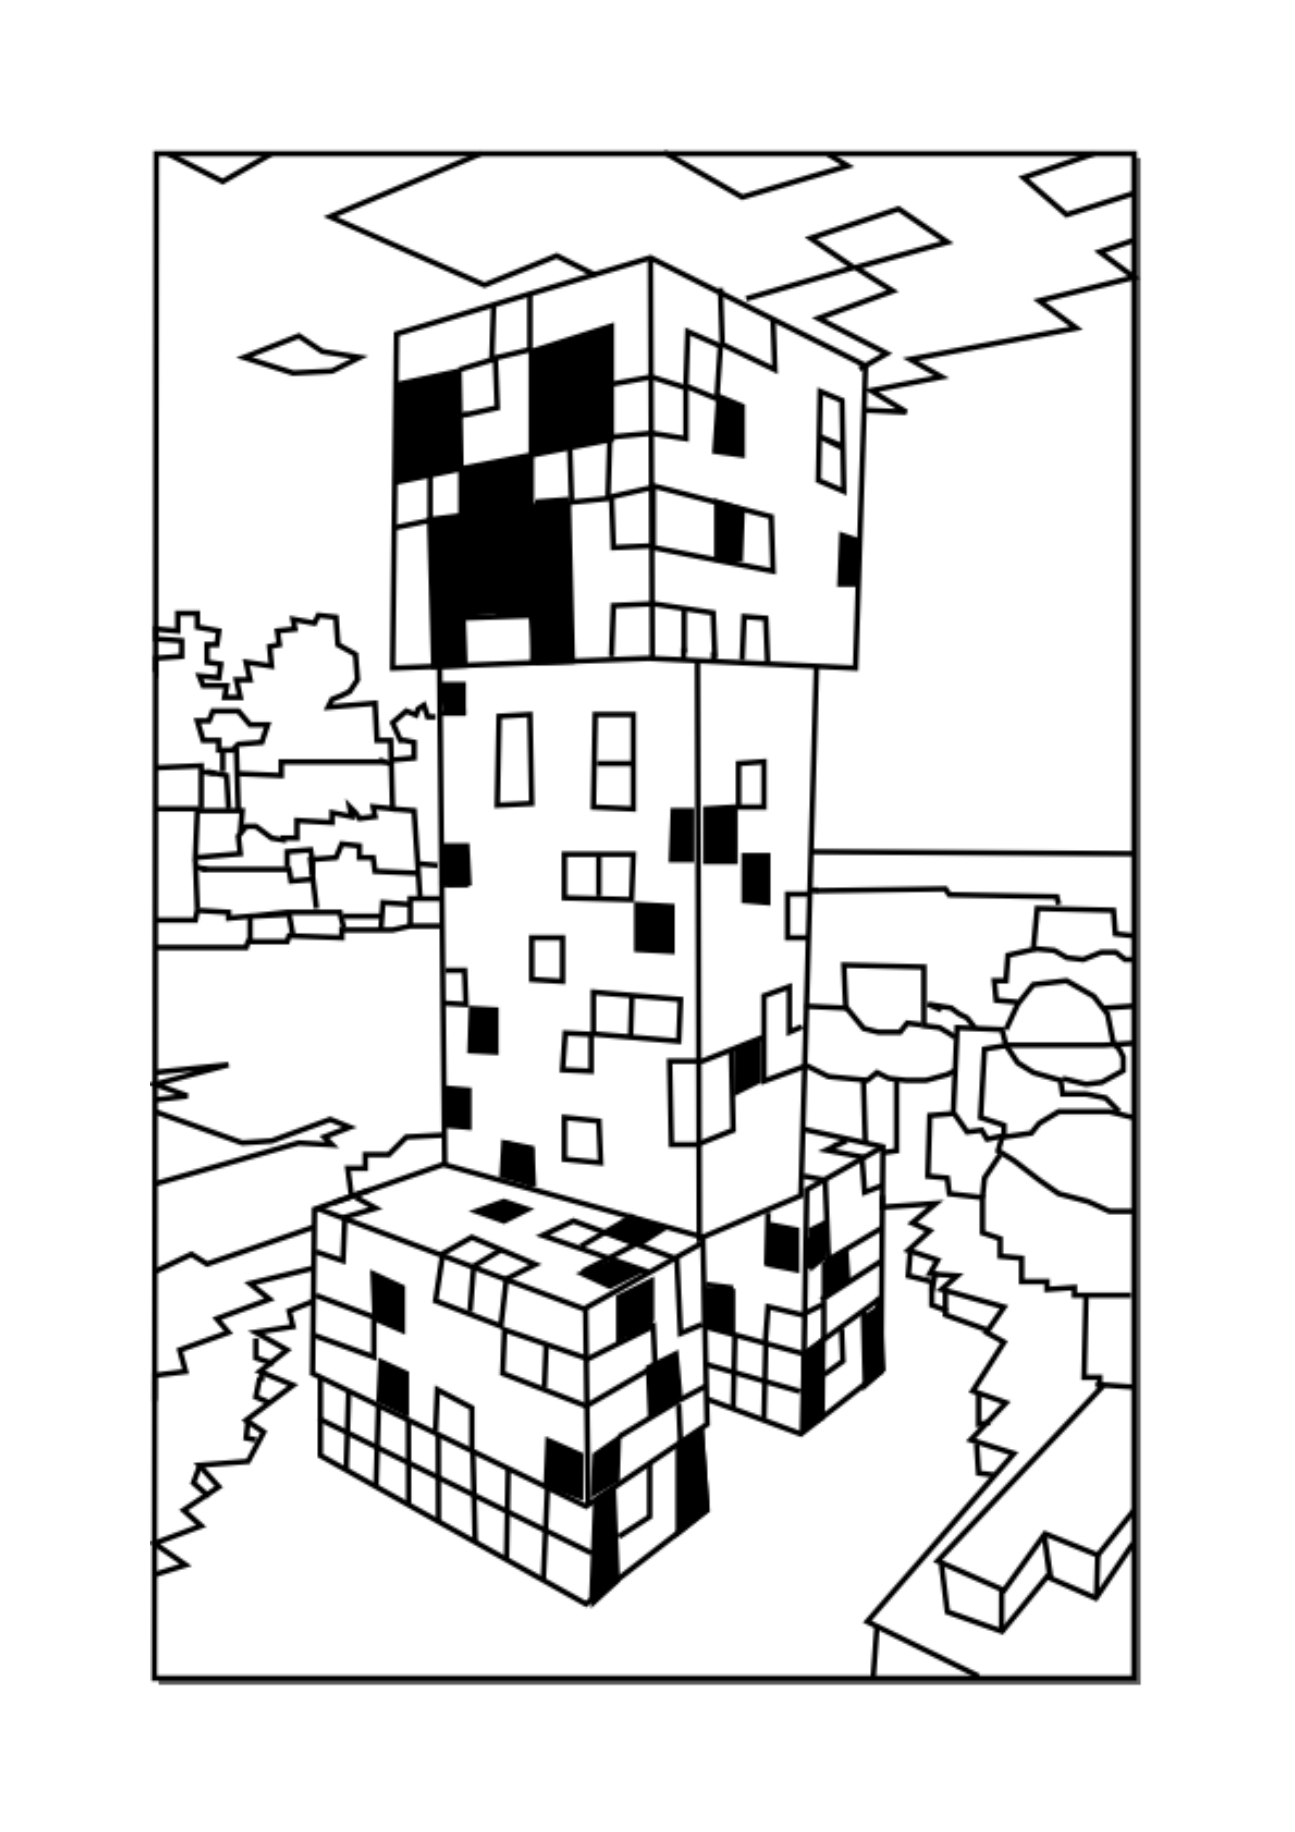 Minecraft Coloring Pages Creeper : minecraft, coloring, pages, creeper, Minecraft, Creeper, Coloring